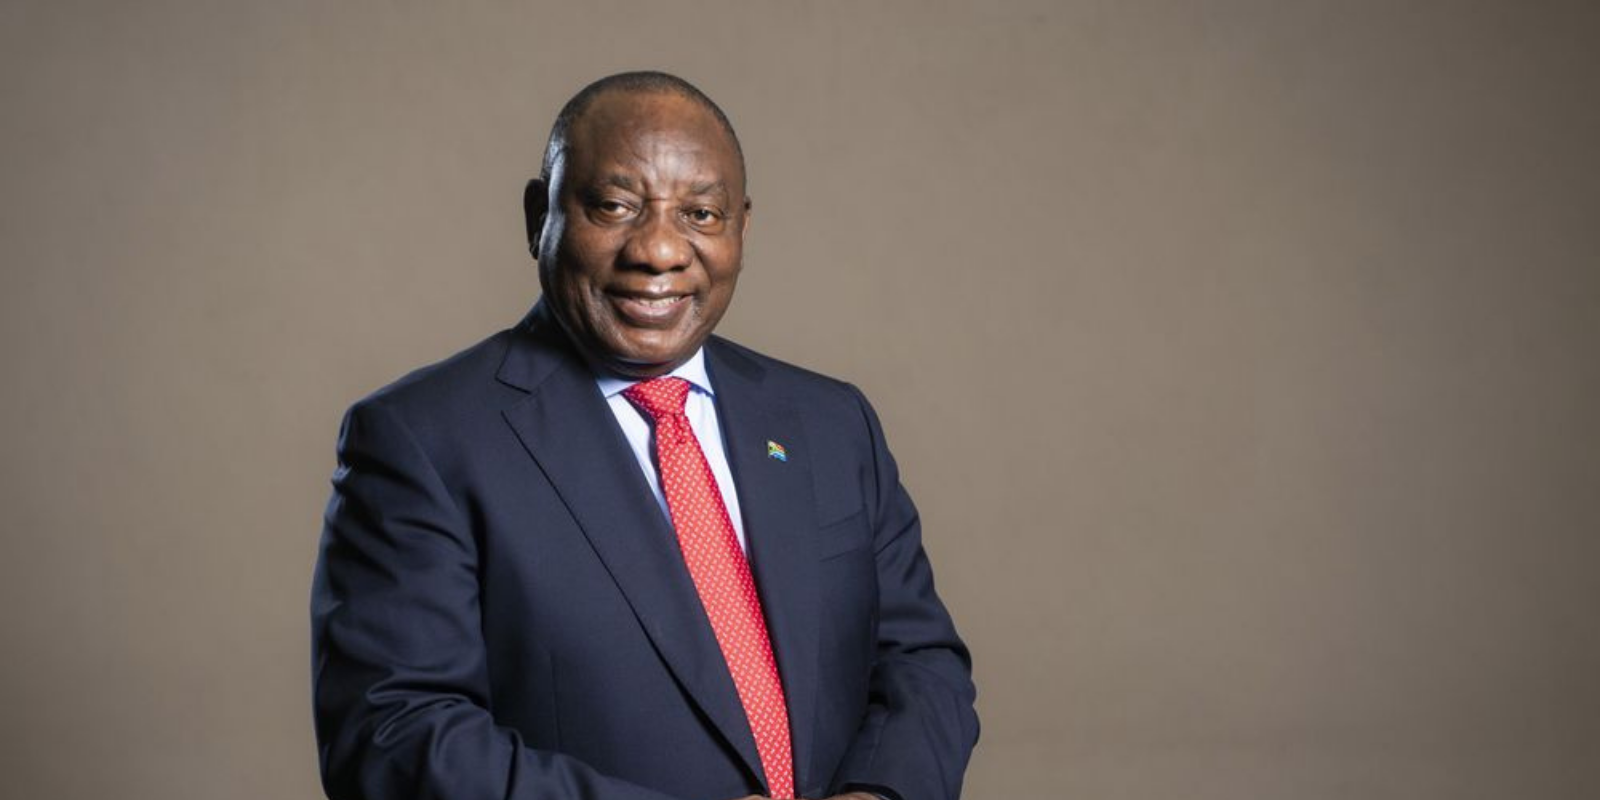 Cyril Ramaphosa is the president of which country?